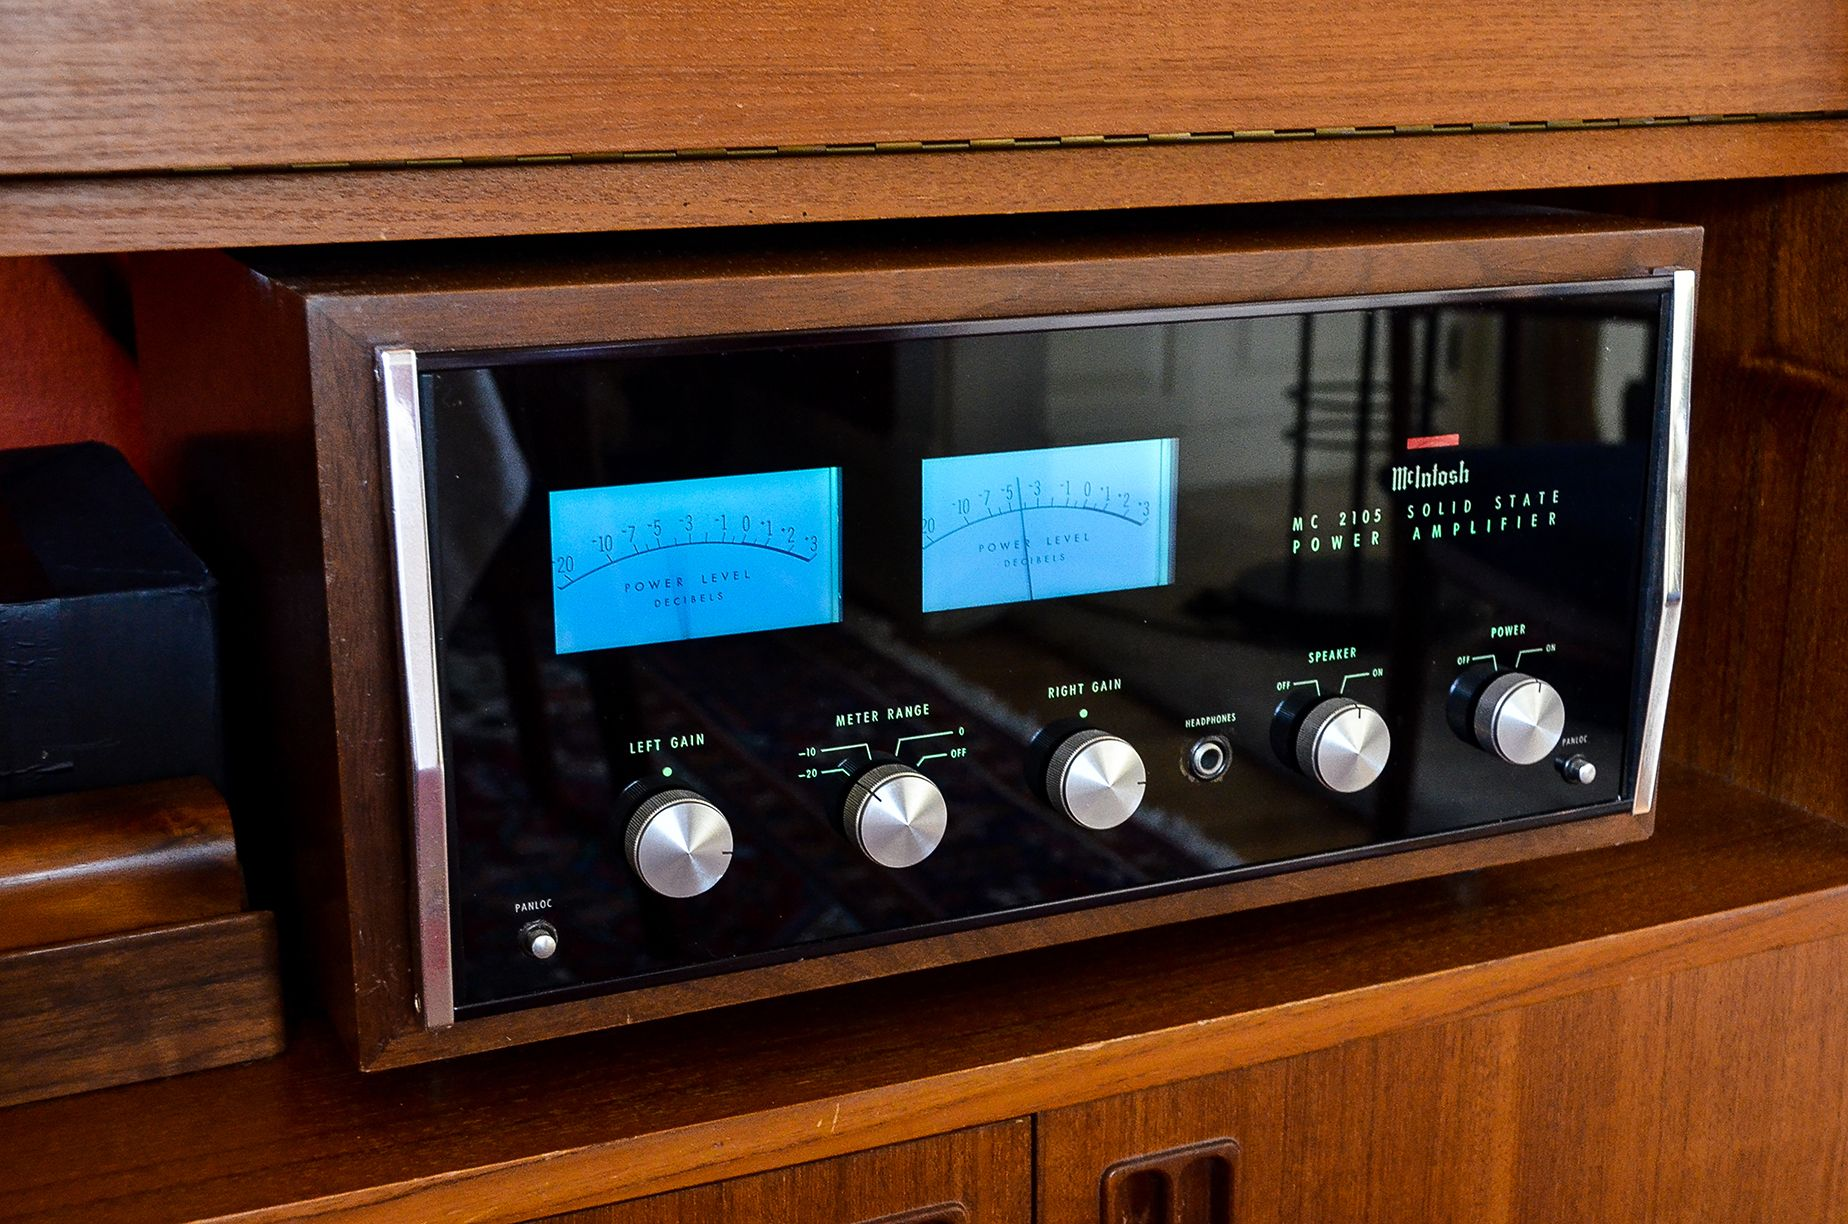 Mcintosh Mc2105 Amplifier Produced From 1967 1977 This Was The Vu Meter For Power Amplifiers Forerunner To A Great Series Of Amps And Pushed What Became Their Signature Look Big Blue Meters Into